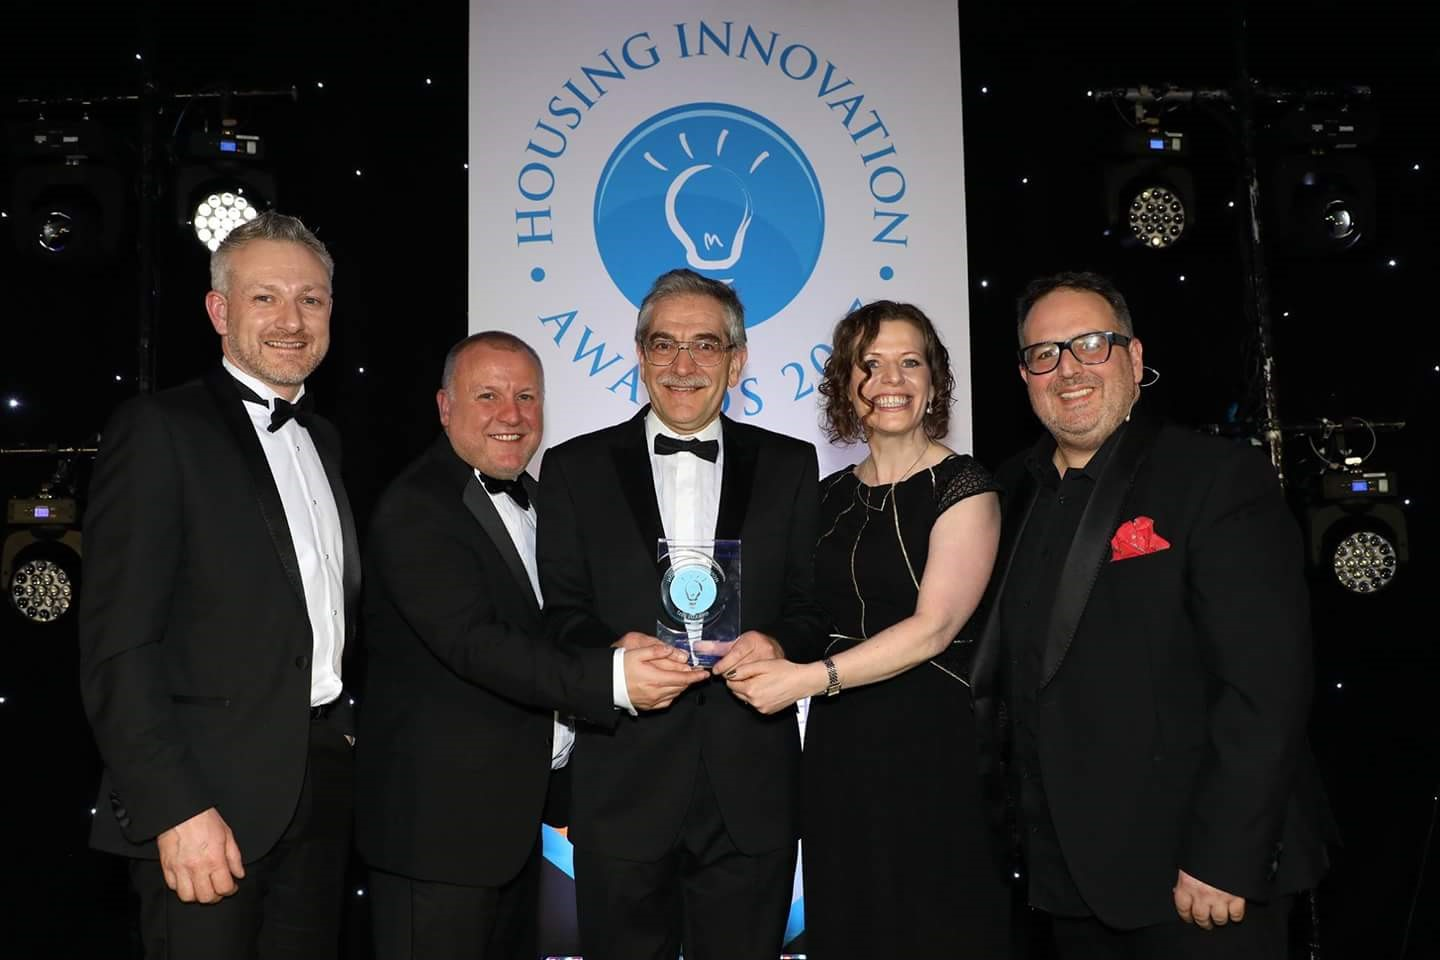 Energy Angels sponsor Most Innovative Housing Association for 10,000 + homes (large)